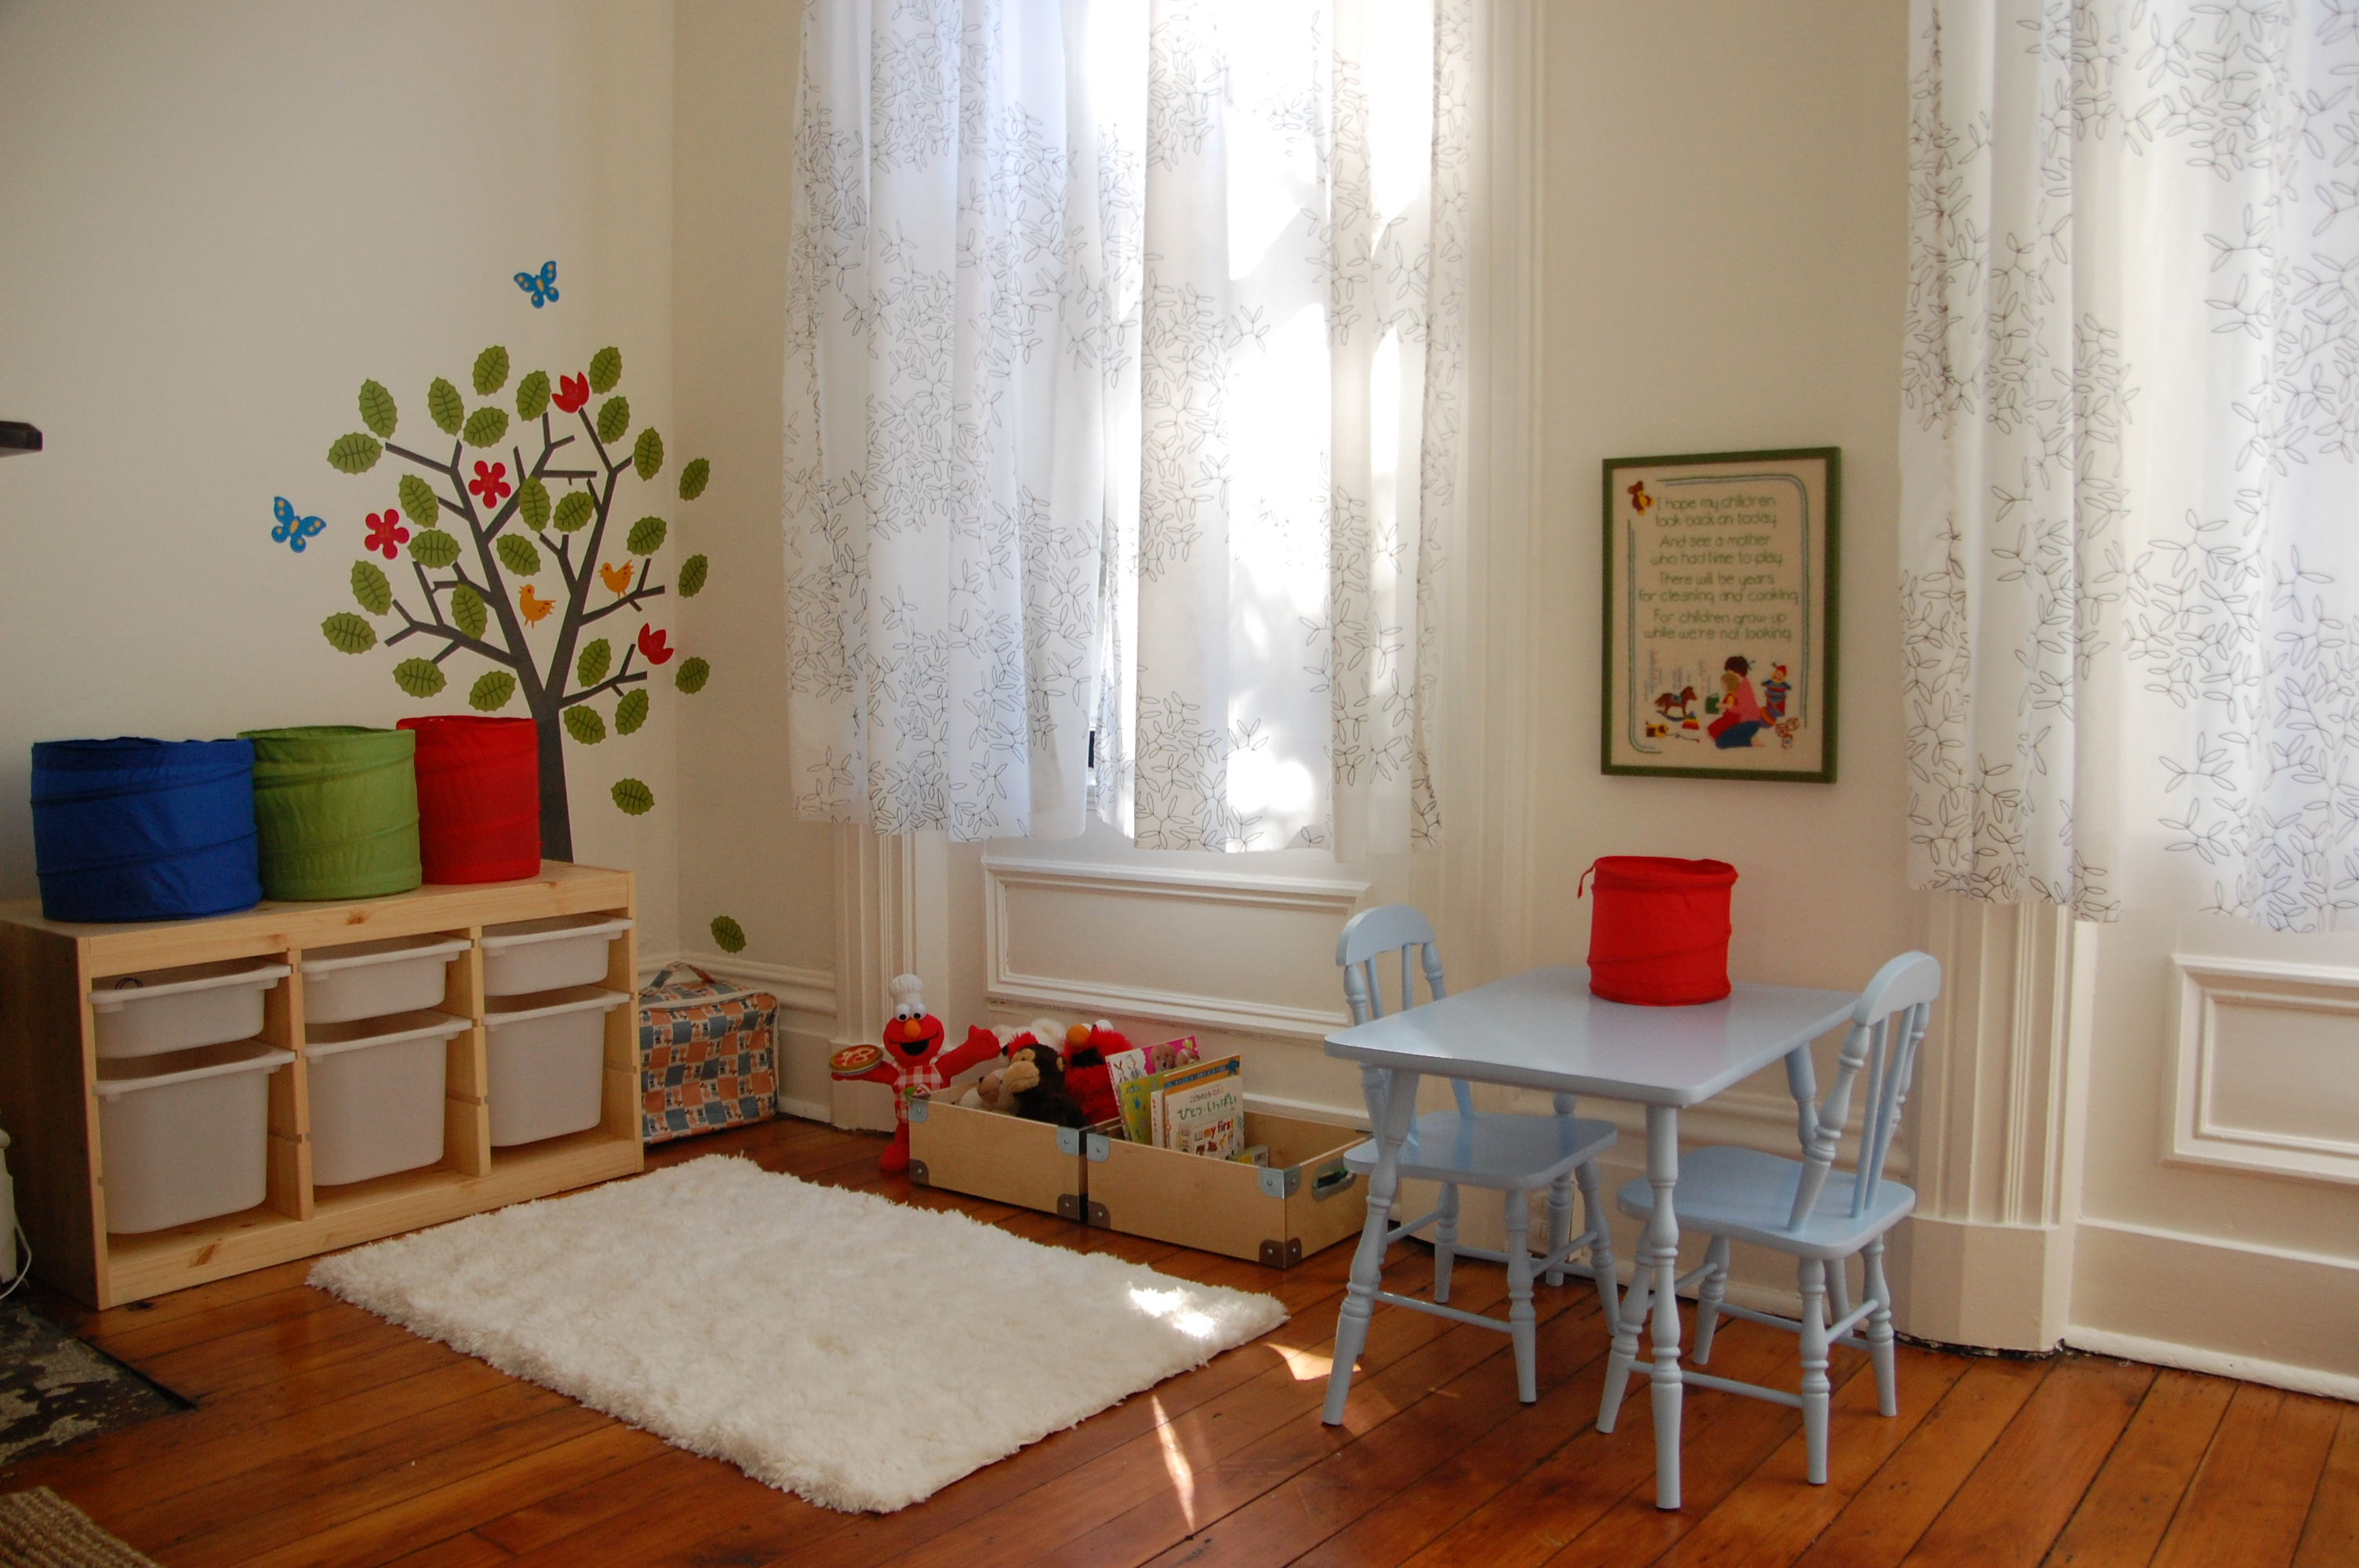 Living room storage furniture living room for Kids play area in living room ideas